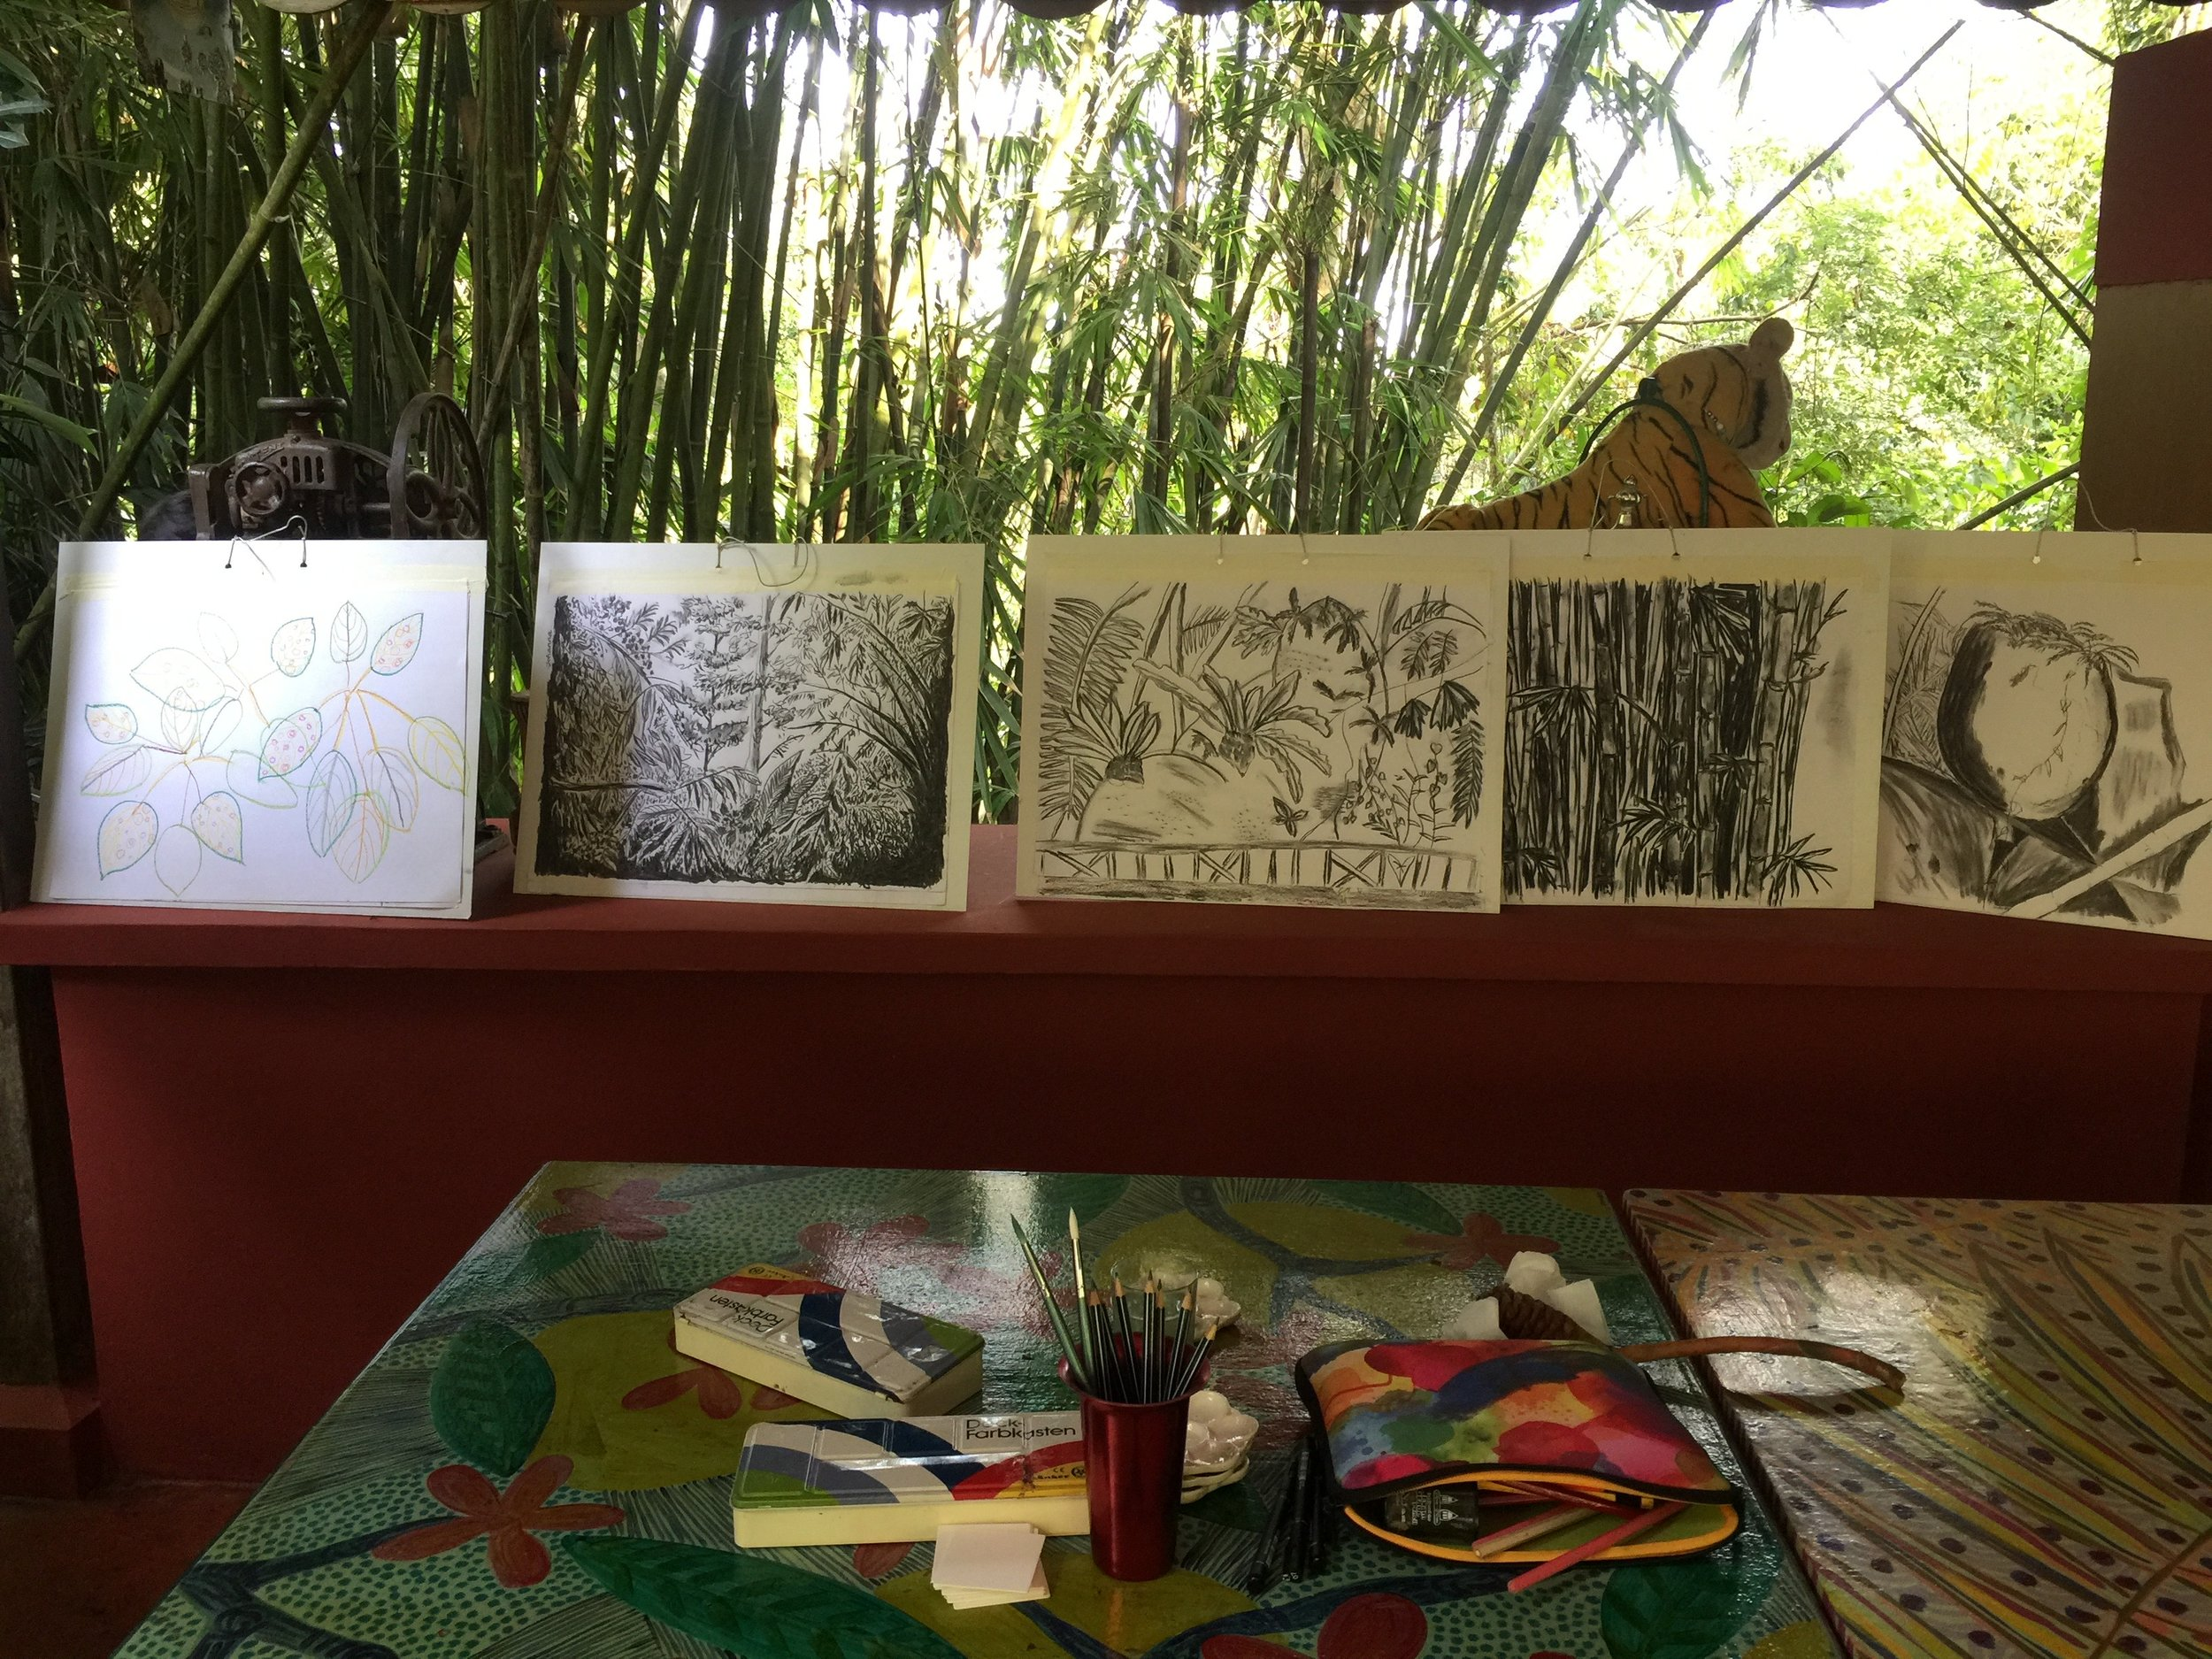 Artwork show & tell at the Pool House, Tiger Rock.